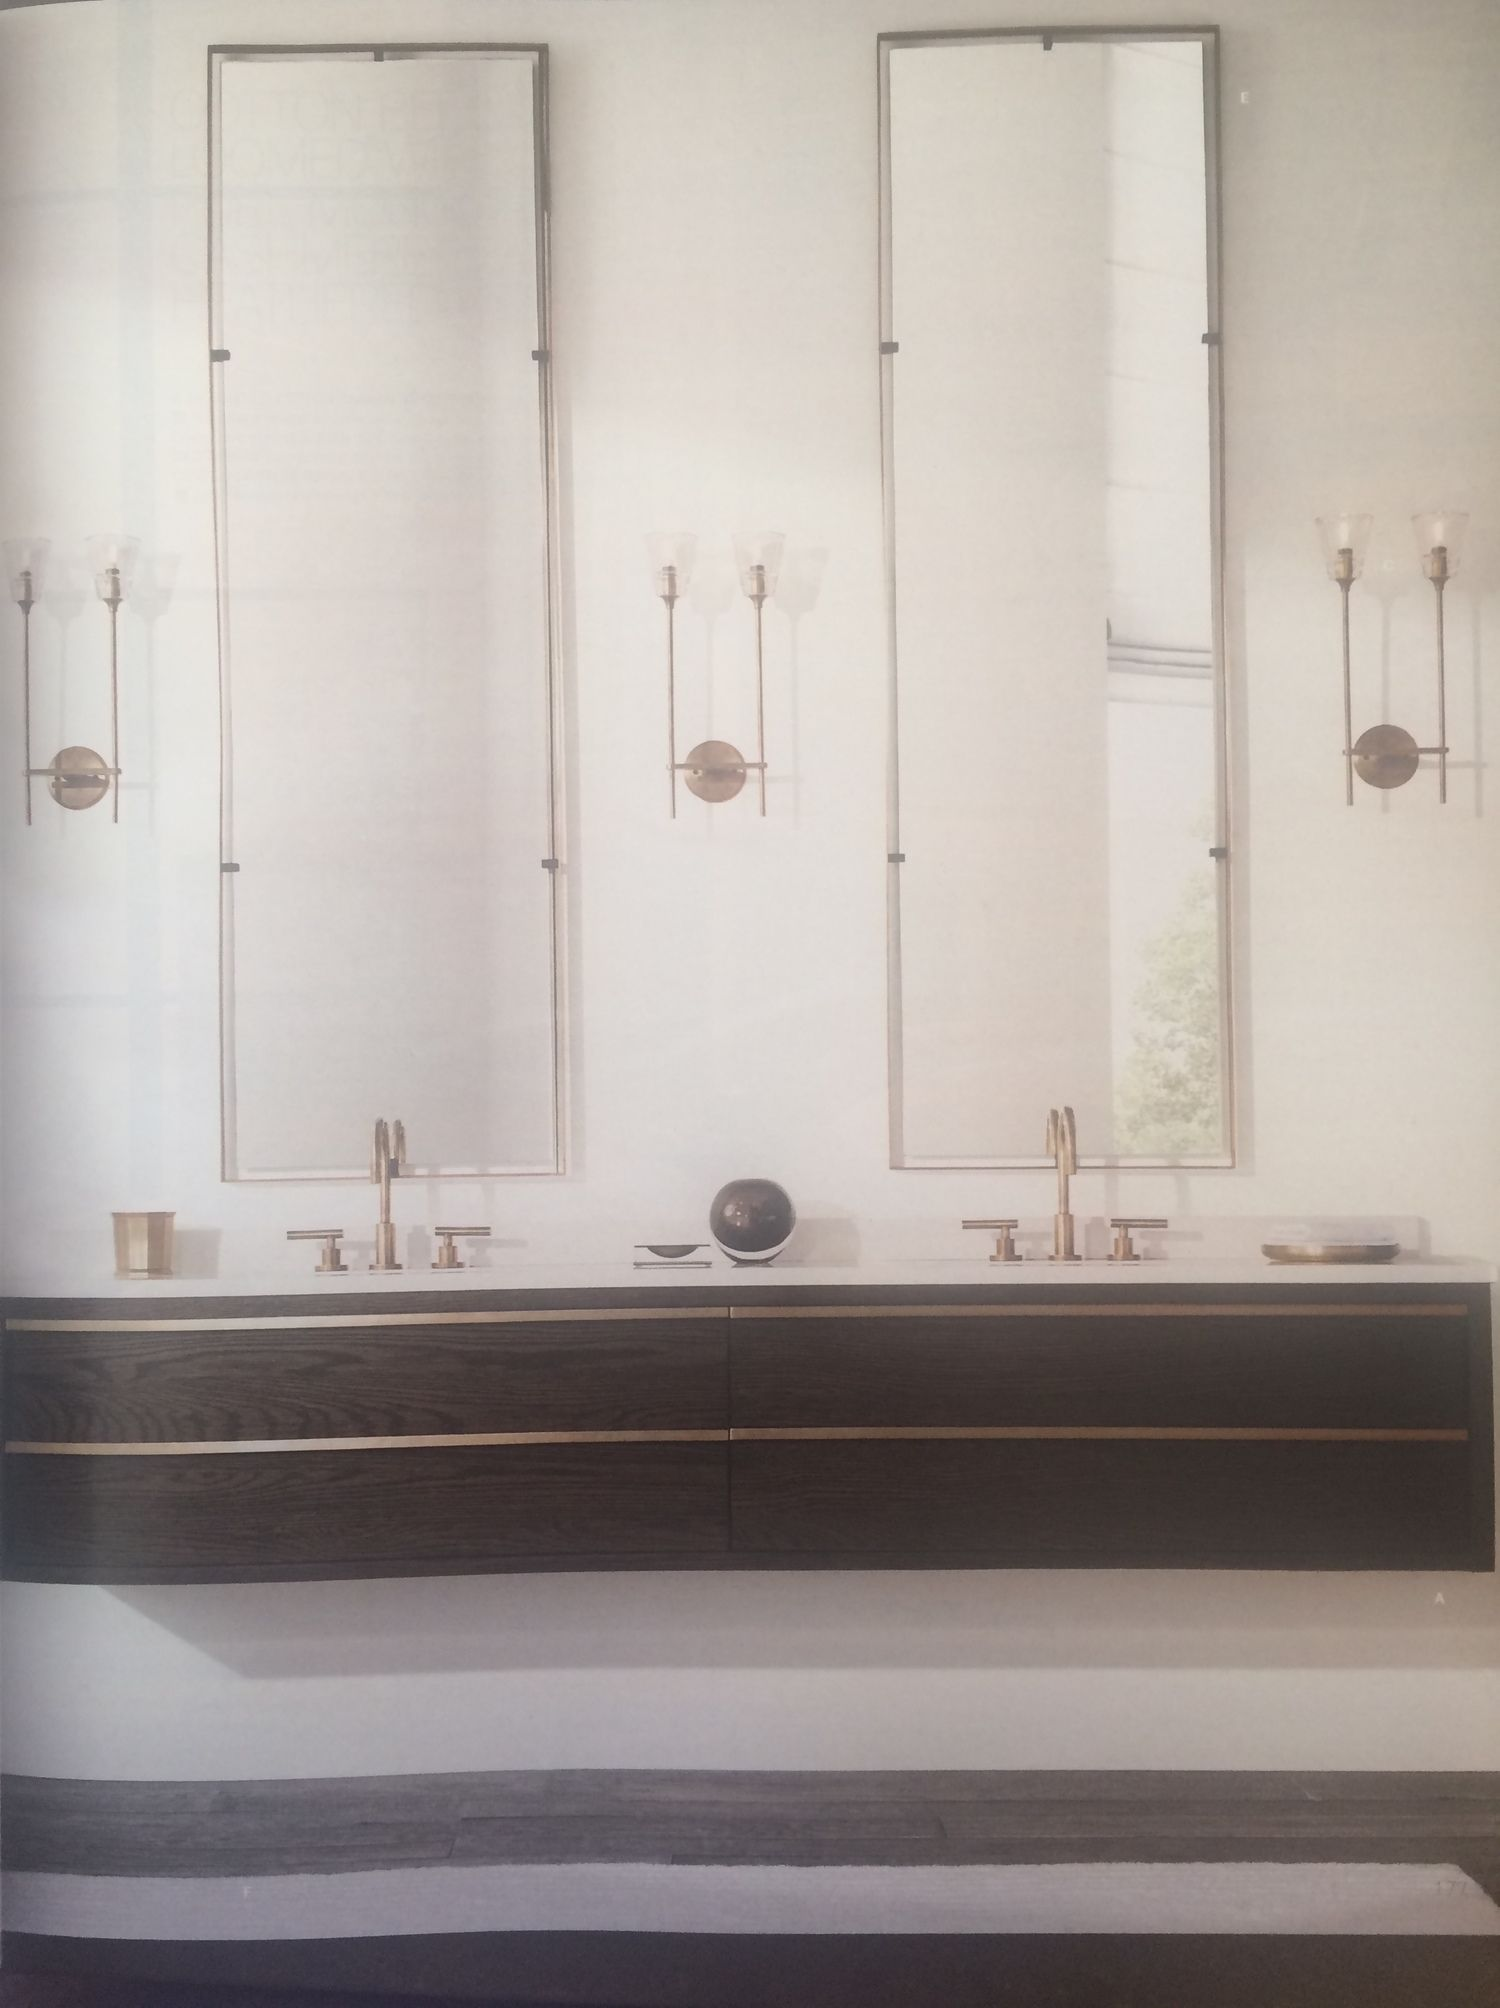 kick vanities vanity appealing off and room restoration nsyd style light powder trends master bamboo the hardware walls of white bathroom best